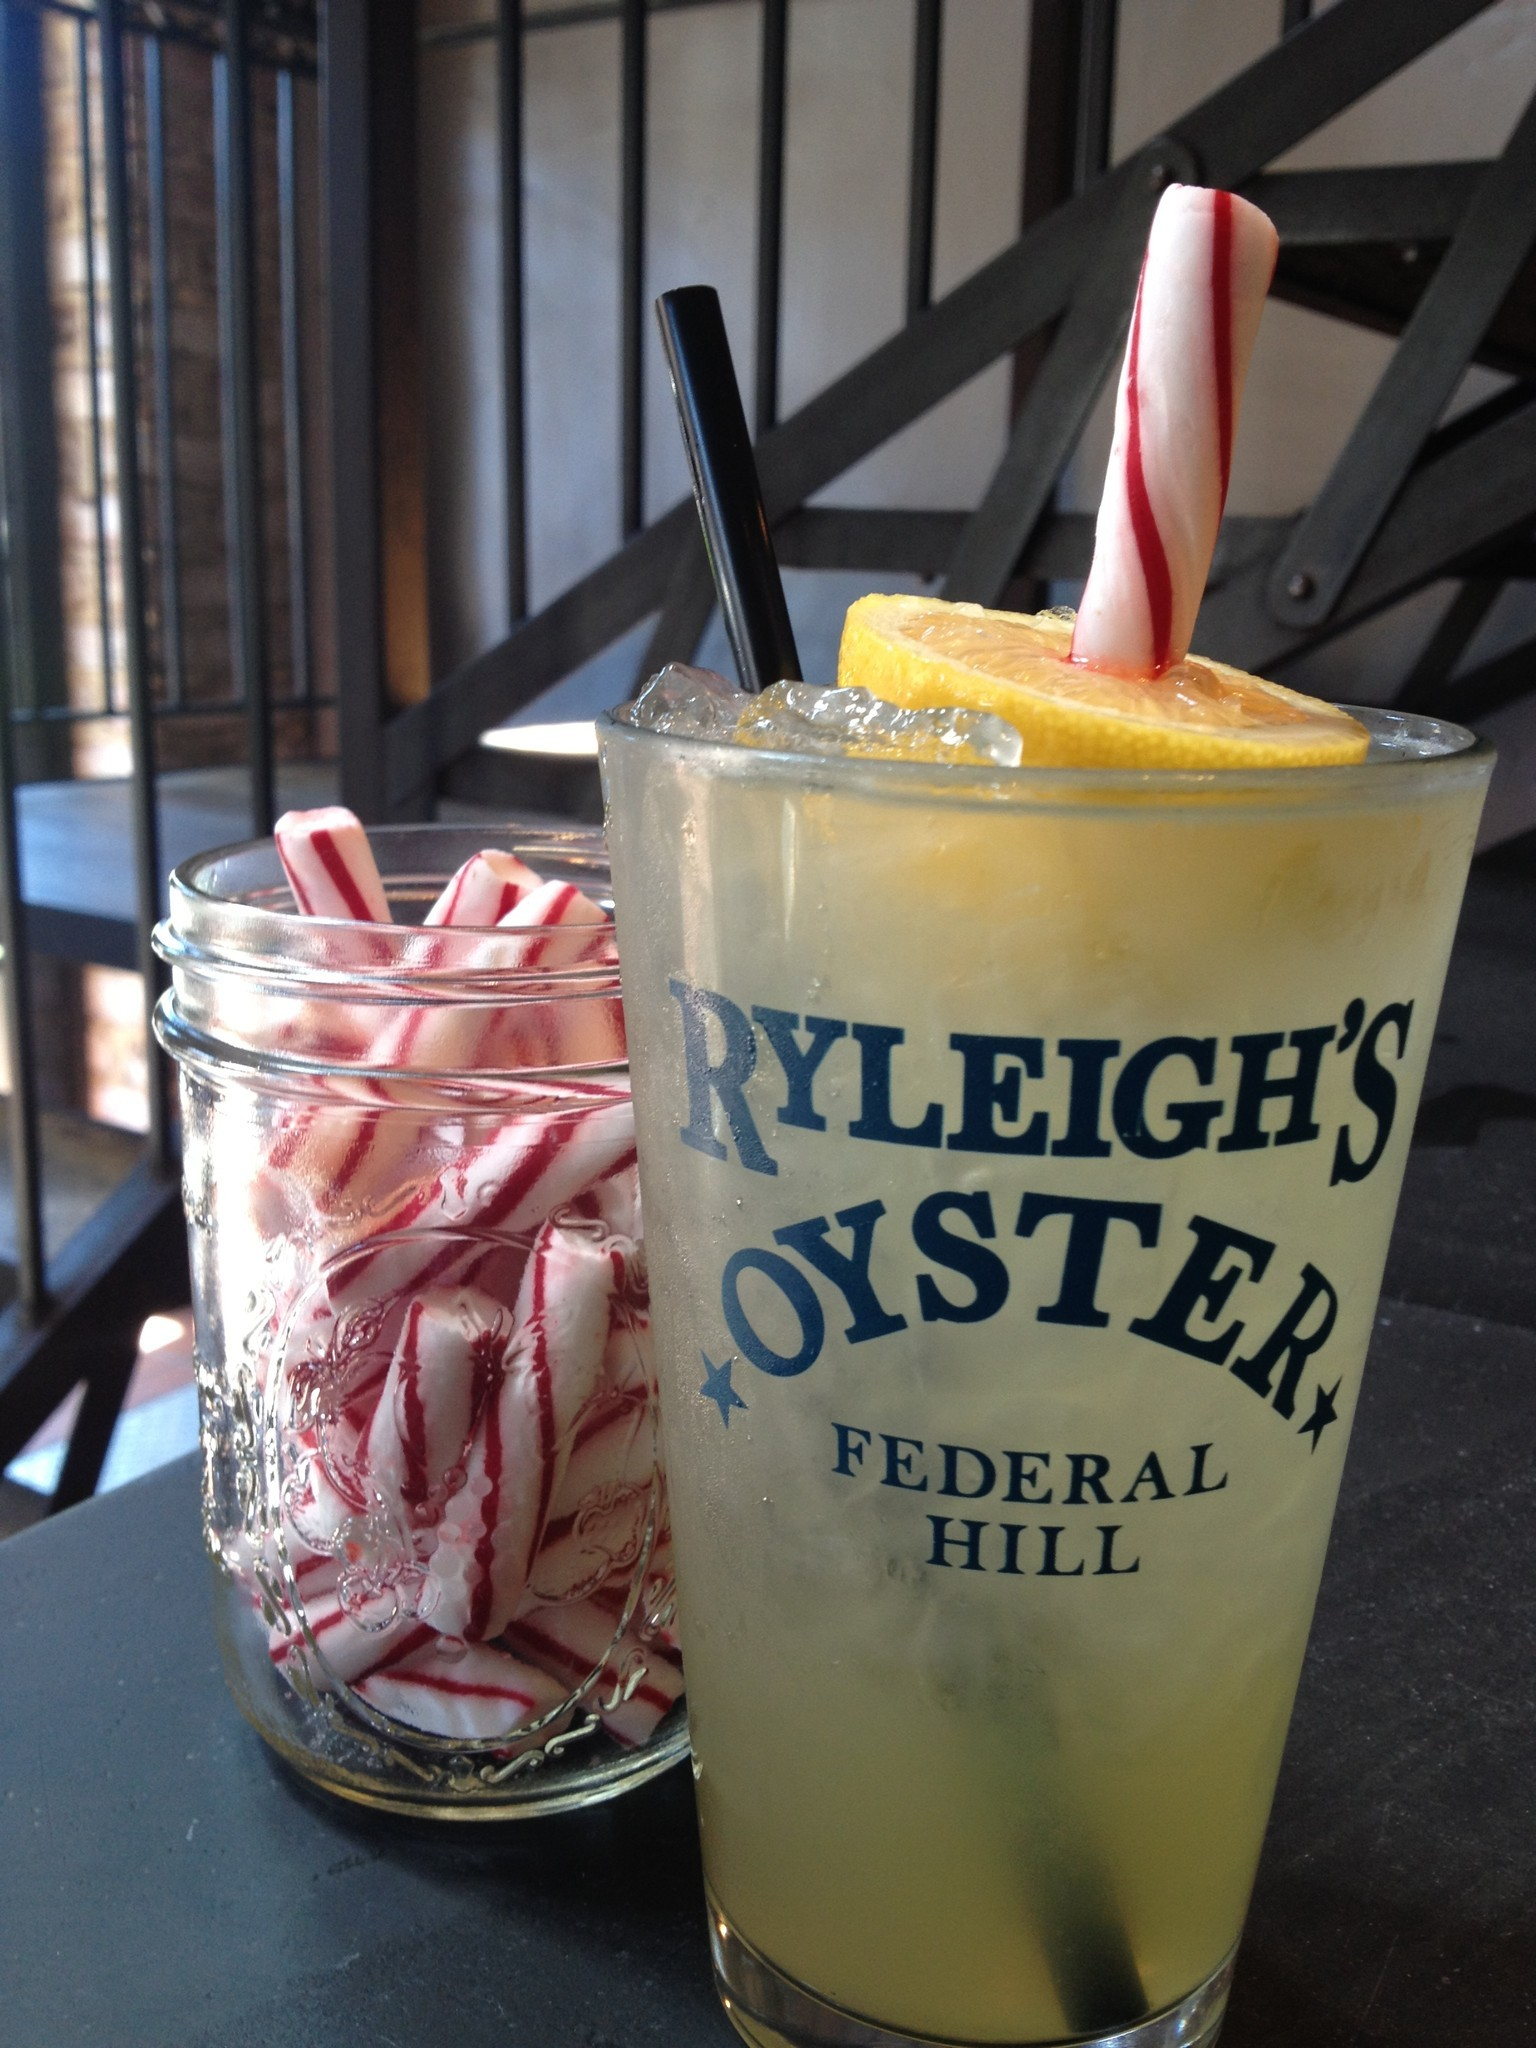 A Lemon Stick In A Glass At Ryleighs Oyster